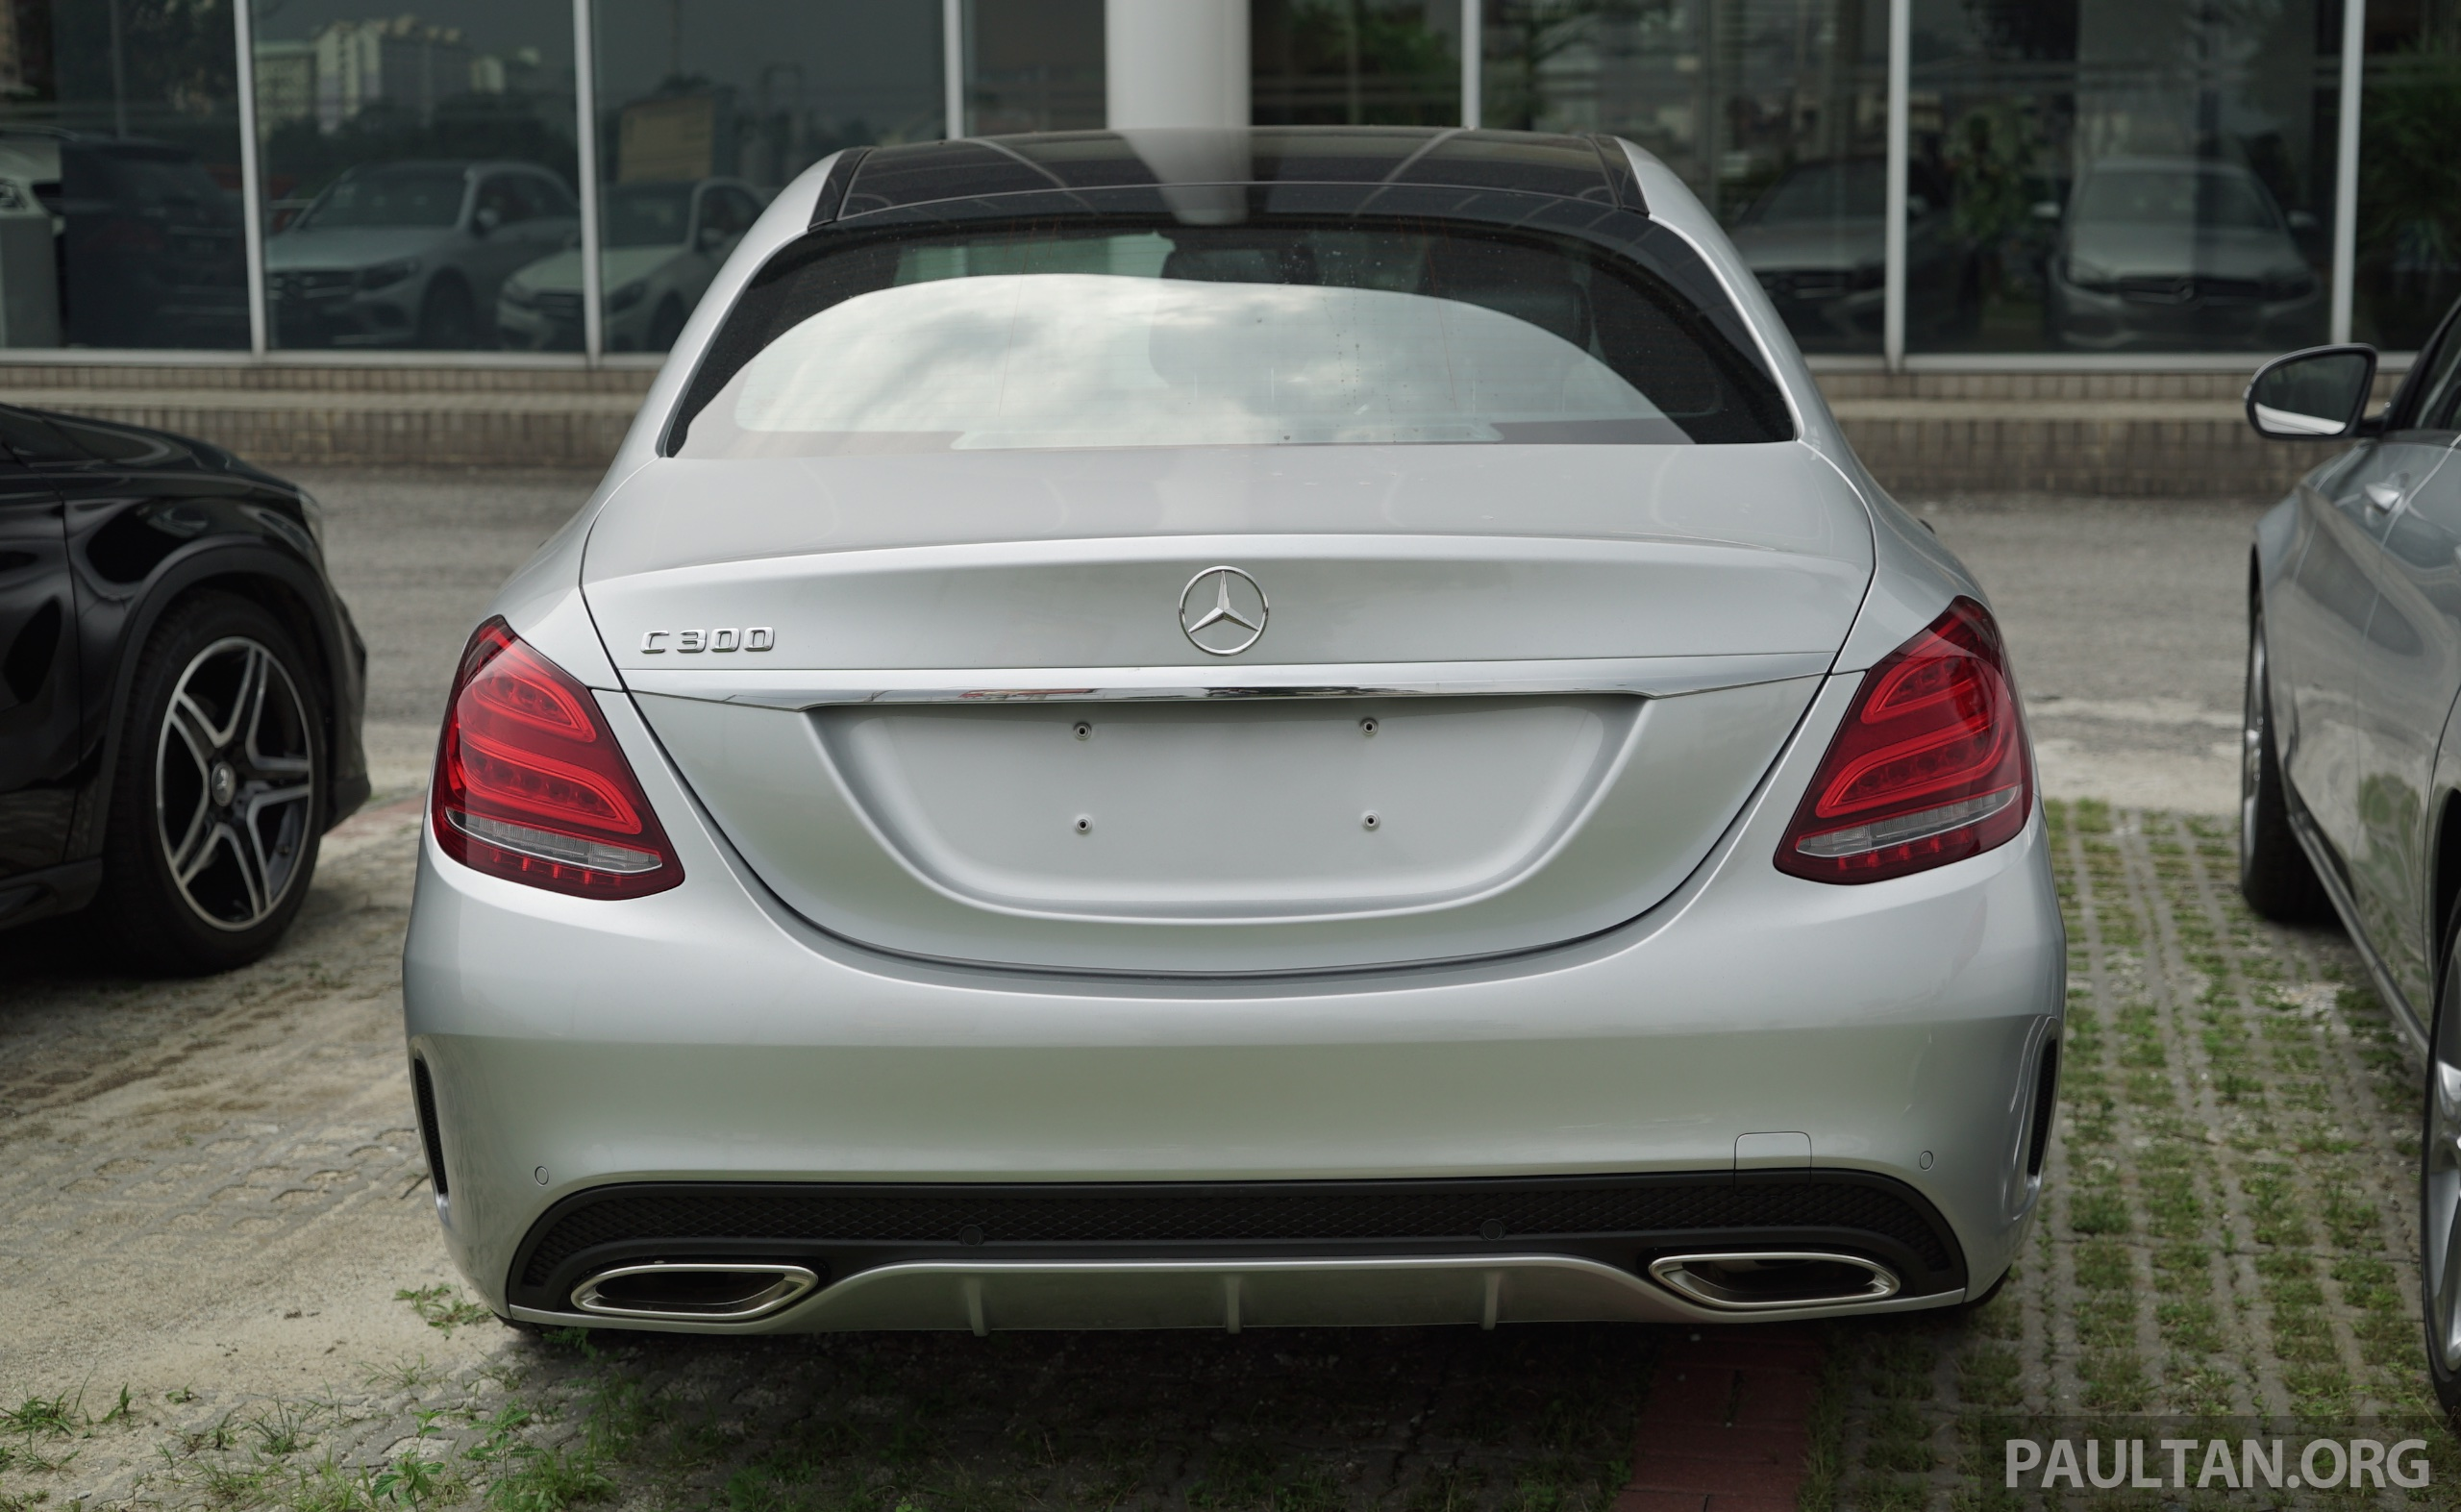 GALLERY: W205 Mercedes-Benz C180 Avantgarde and C300 AMG ...